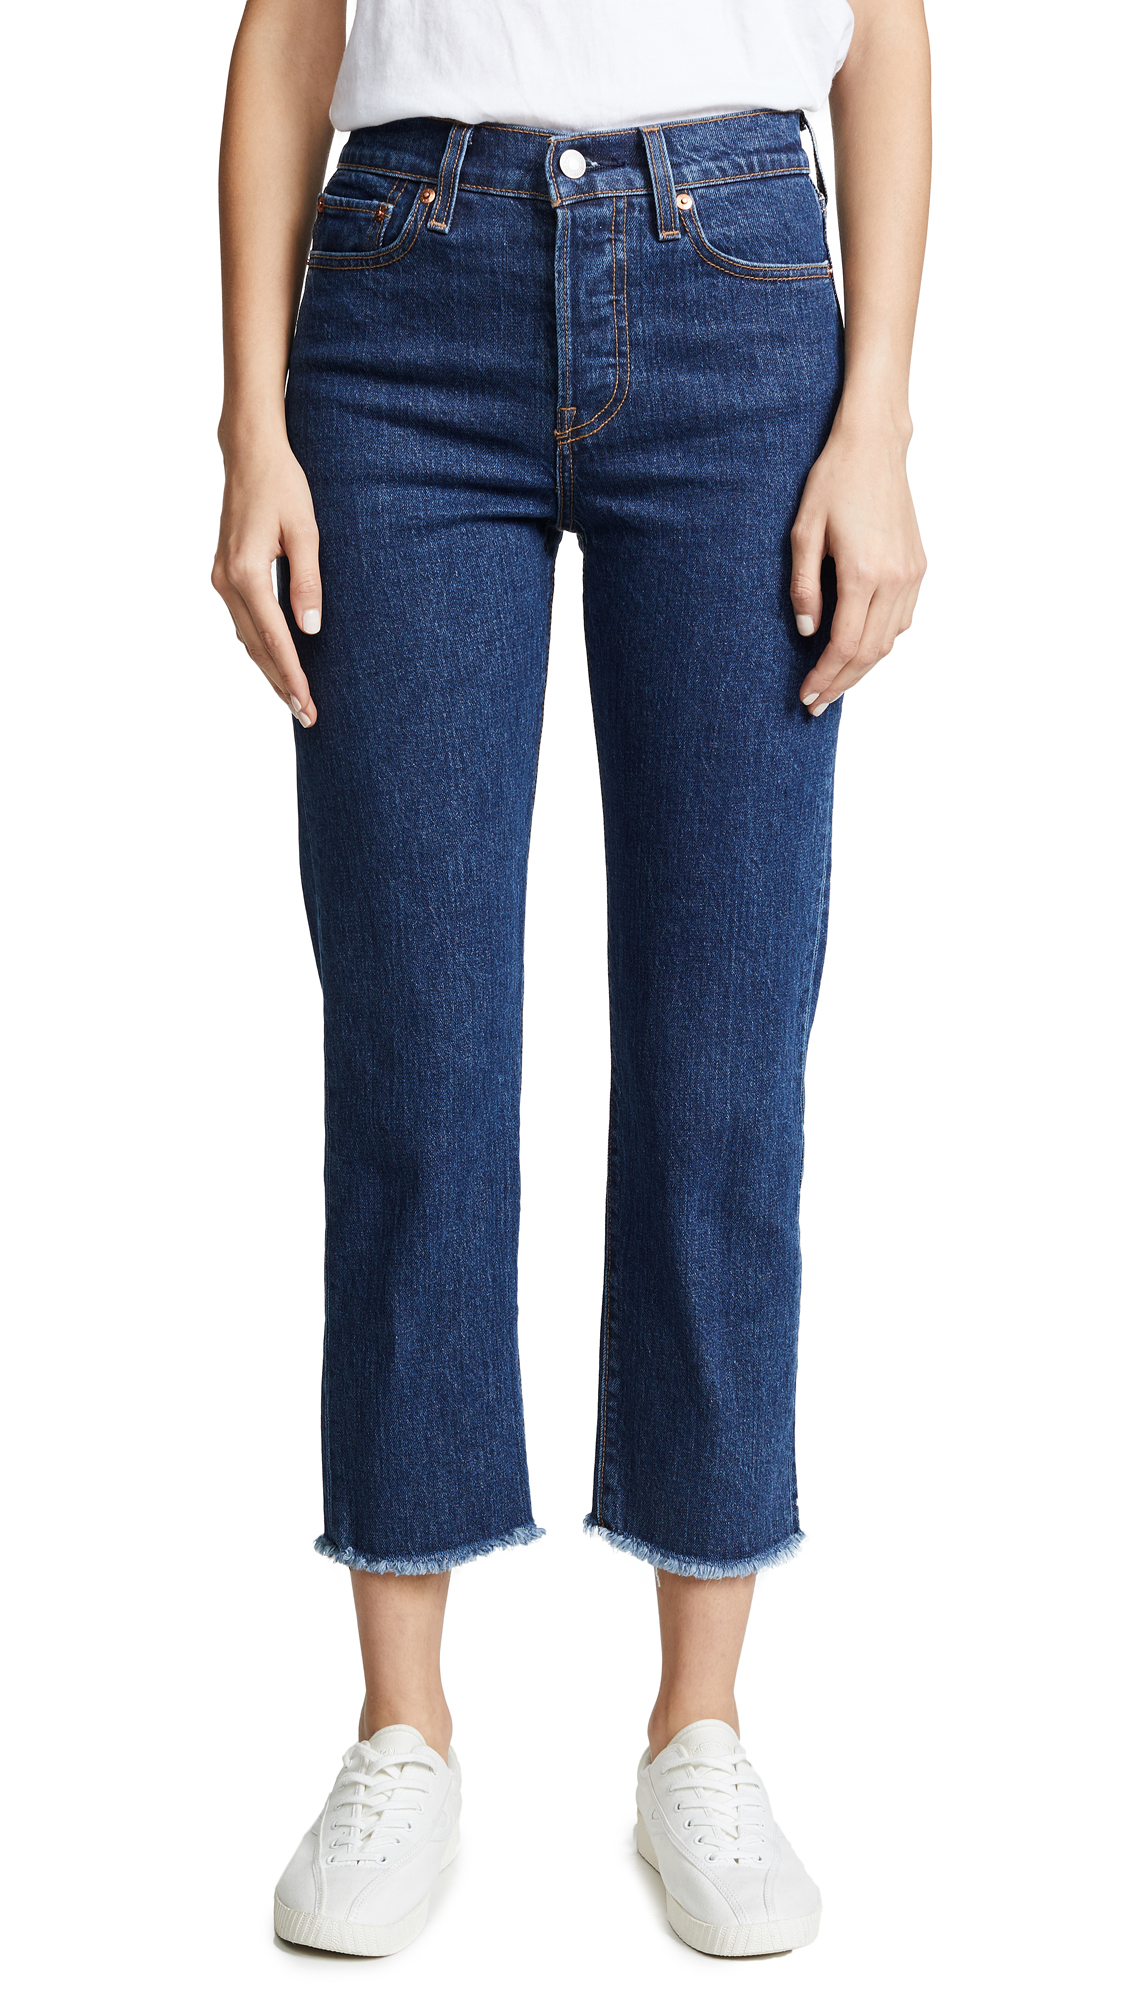 The Wedgie Straight Jeans, Below The Belt